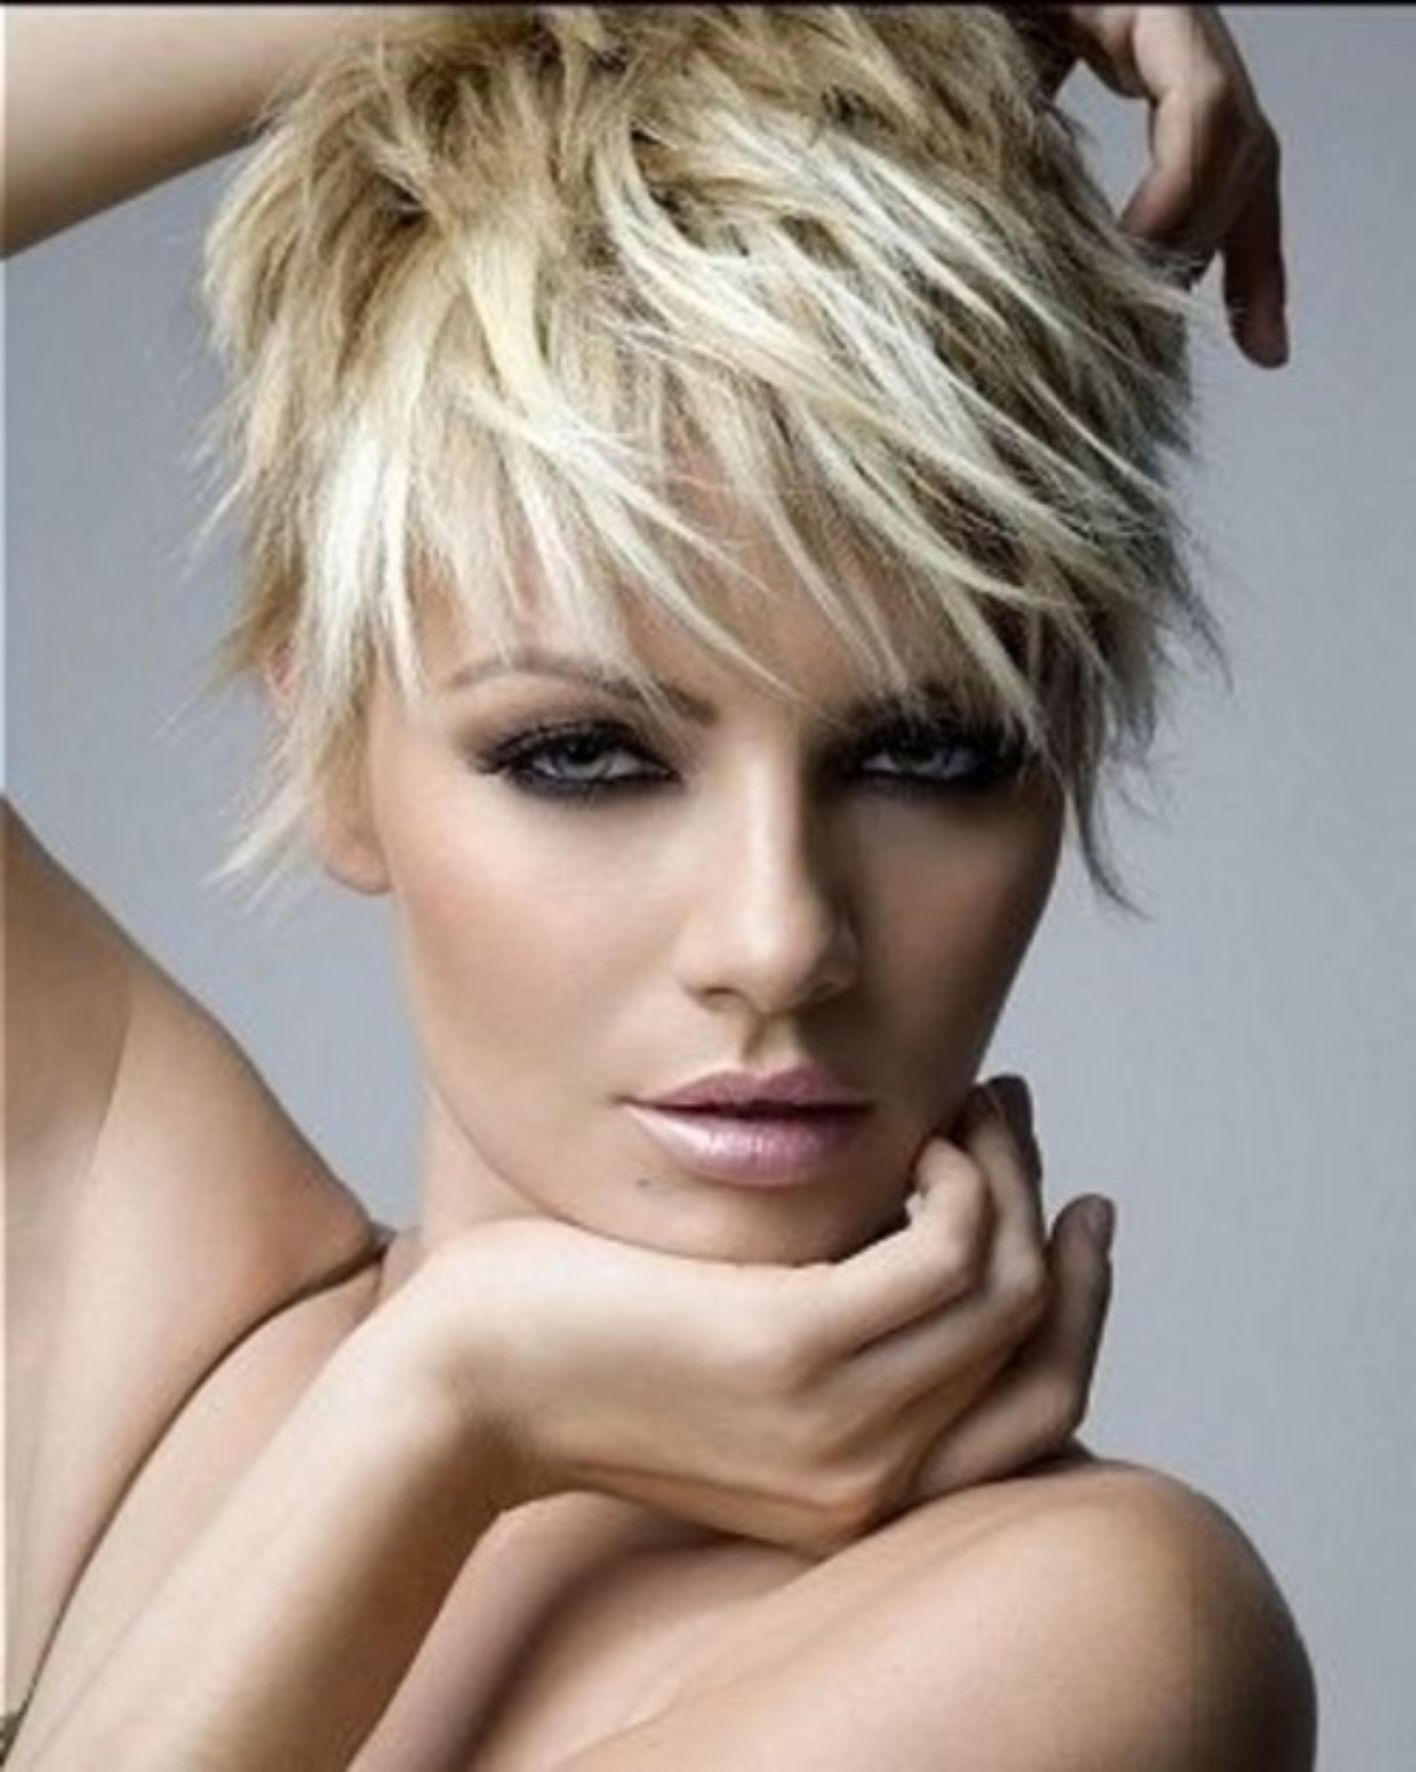 70 Overwhelming Ideas For Short Choppy Haircuts | Hot With In Messy Spiky Pixie Haircuts With Asymmetrical Bangs (View 11 of 20)